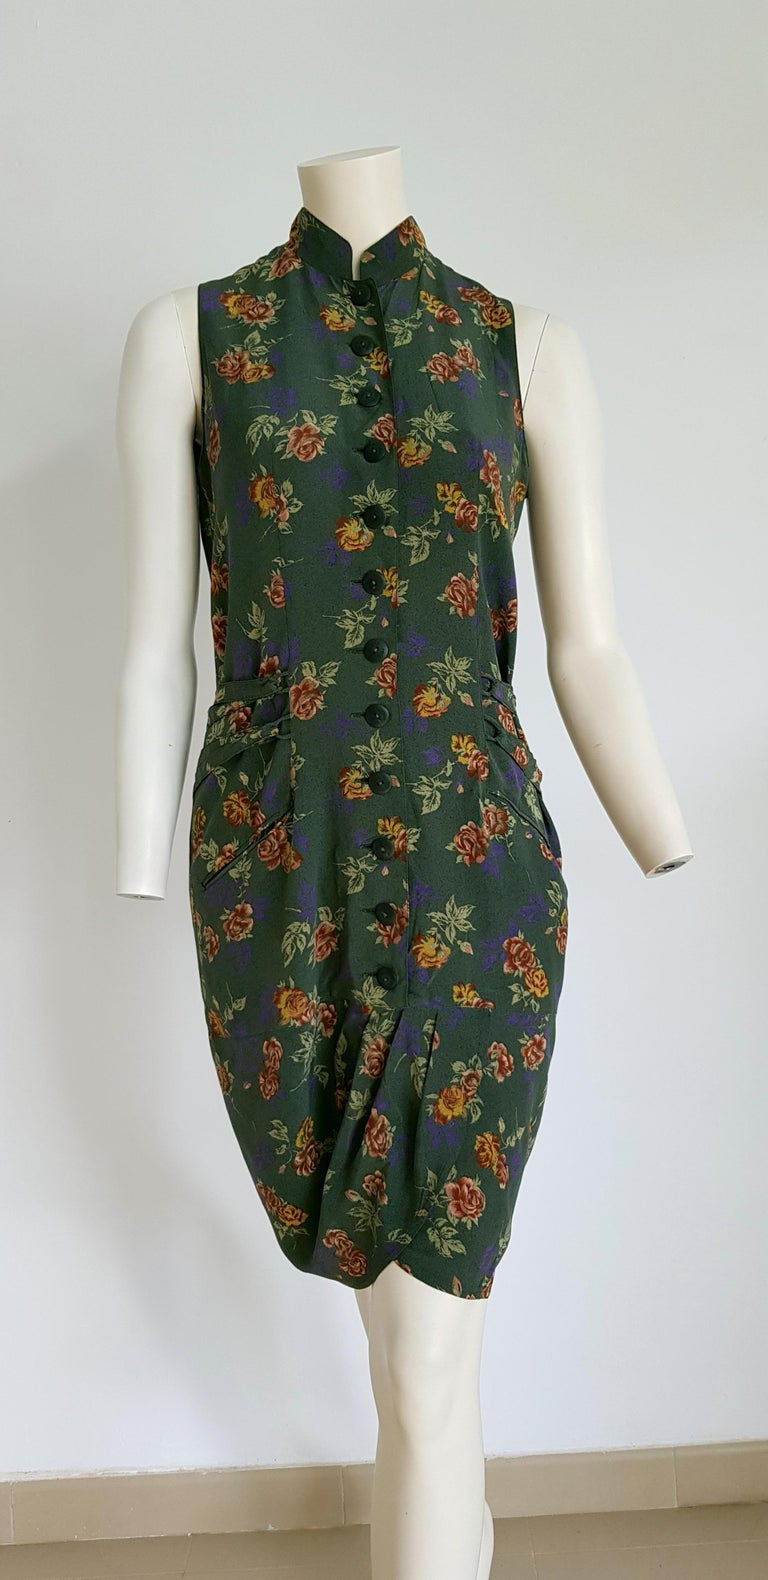 ROCCOBAROCCO Haute Couture, green on flowers theme, ribbons on the back, silk dress - Unworn, New.  SIZE: equivalent to about Small / Medium, please review approx measurements as follows in cm: lenght 101, chest underarm to underarm 48, bust